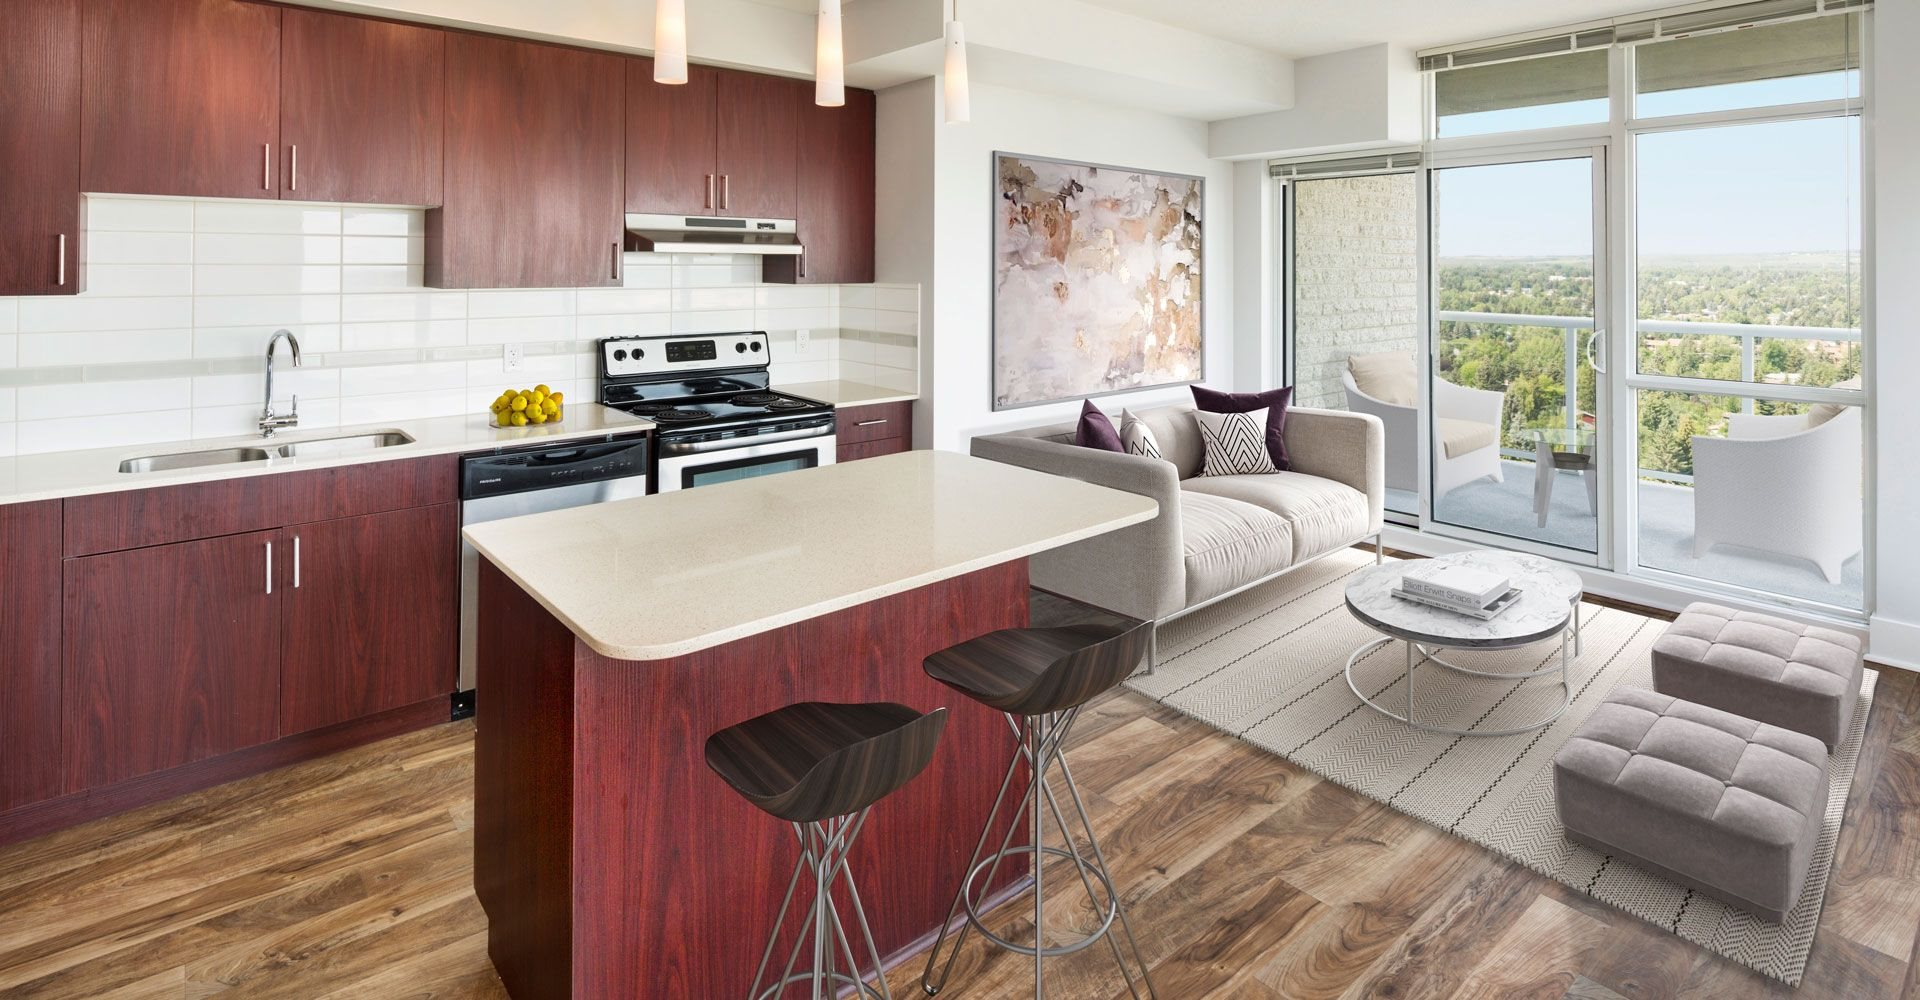 Open concept kitchen with an island, stools, and living room with  a couch and table.